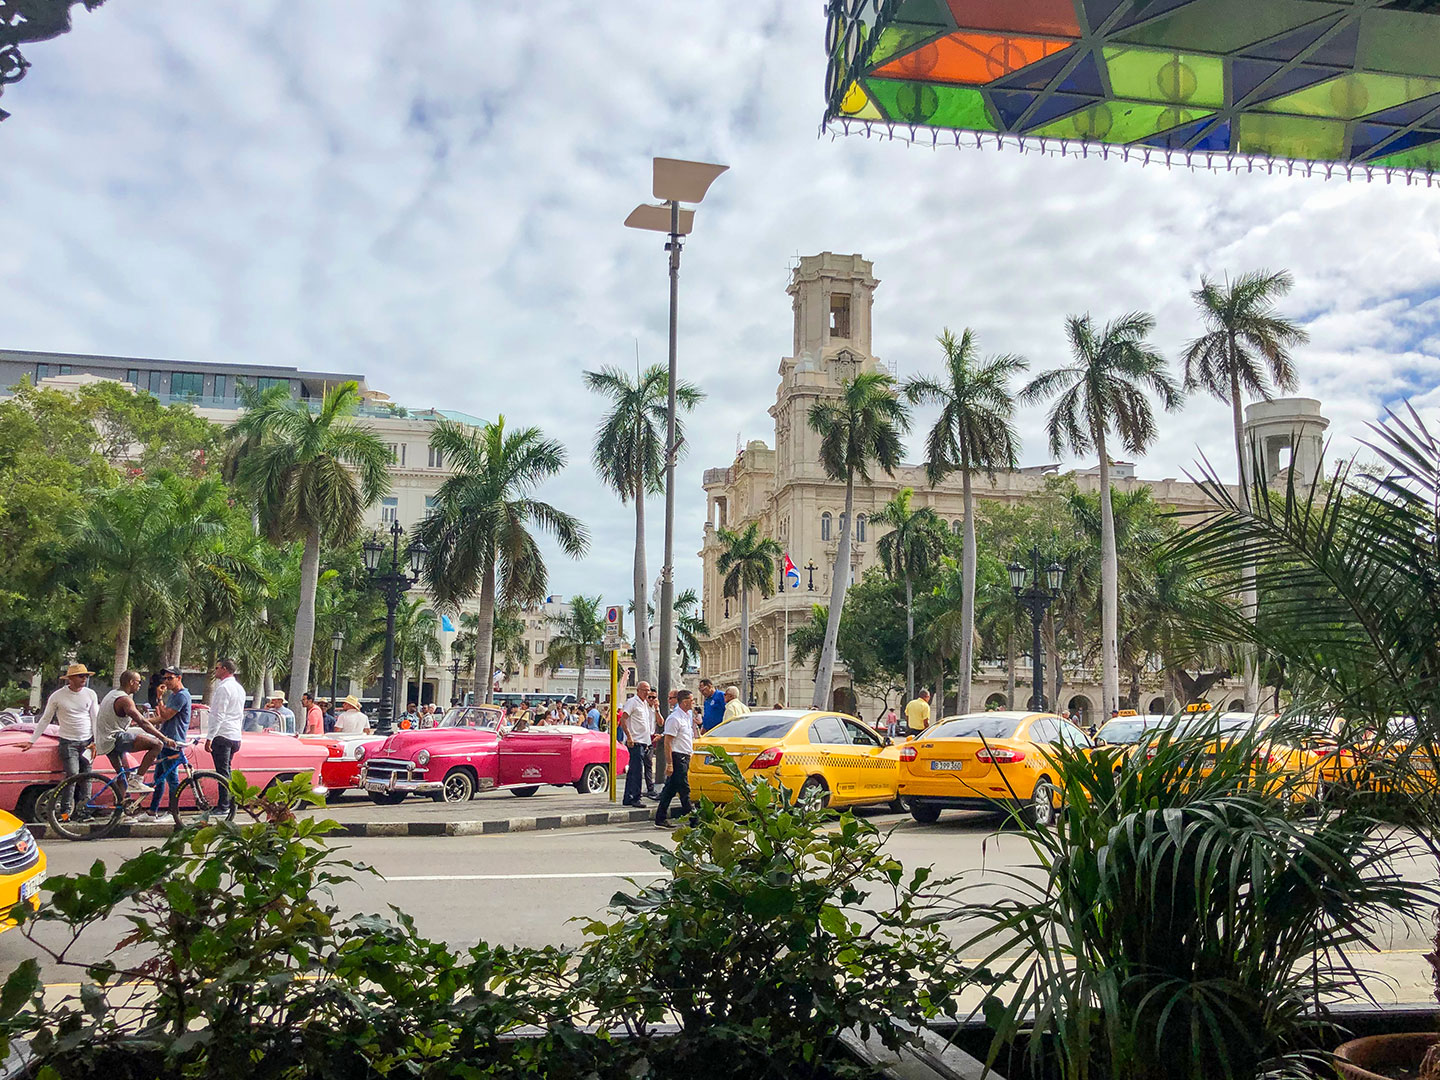 Parque central from the cafe of Hotel Inglaterra in Havana